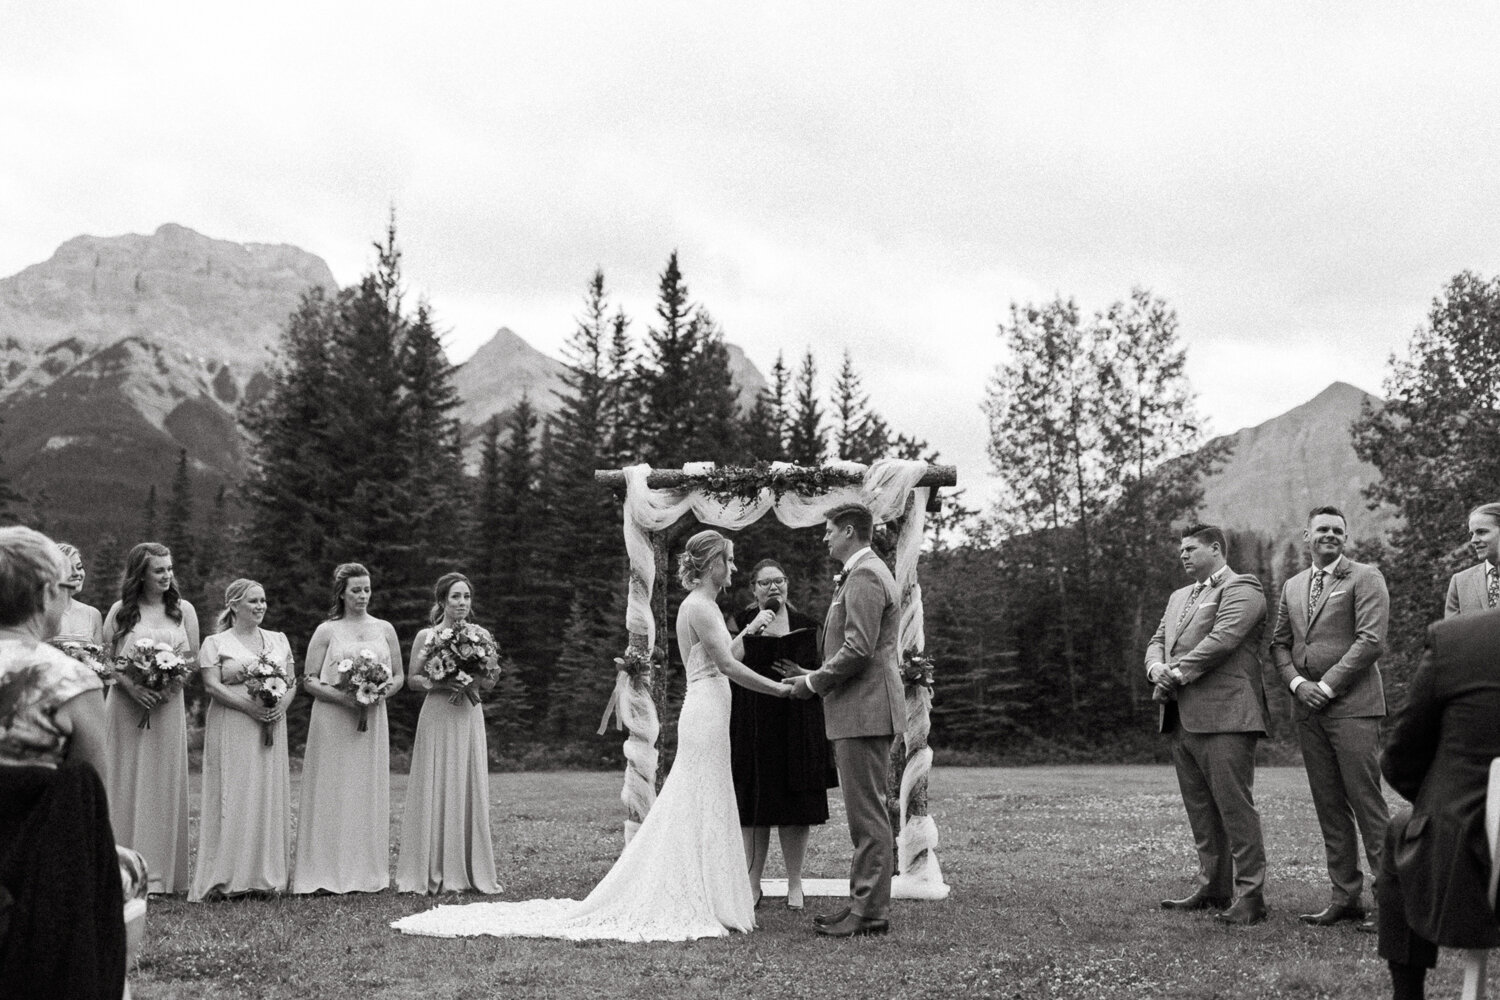 66-Canmore-Alberta-Real-Wedding-Best-Wedding-Photographers-89.JPG